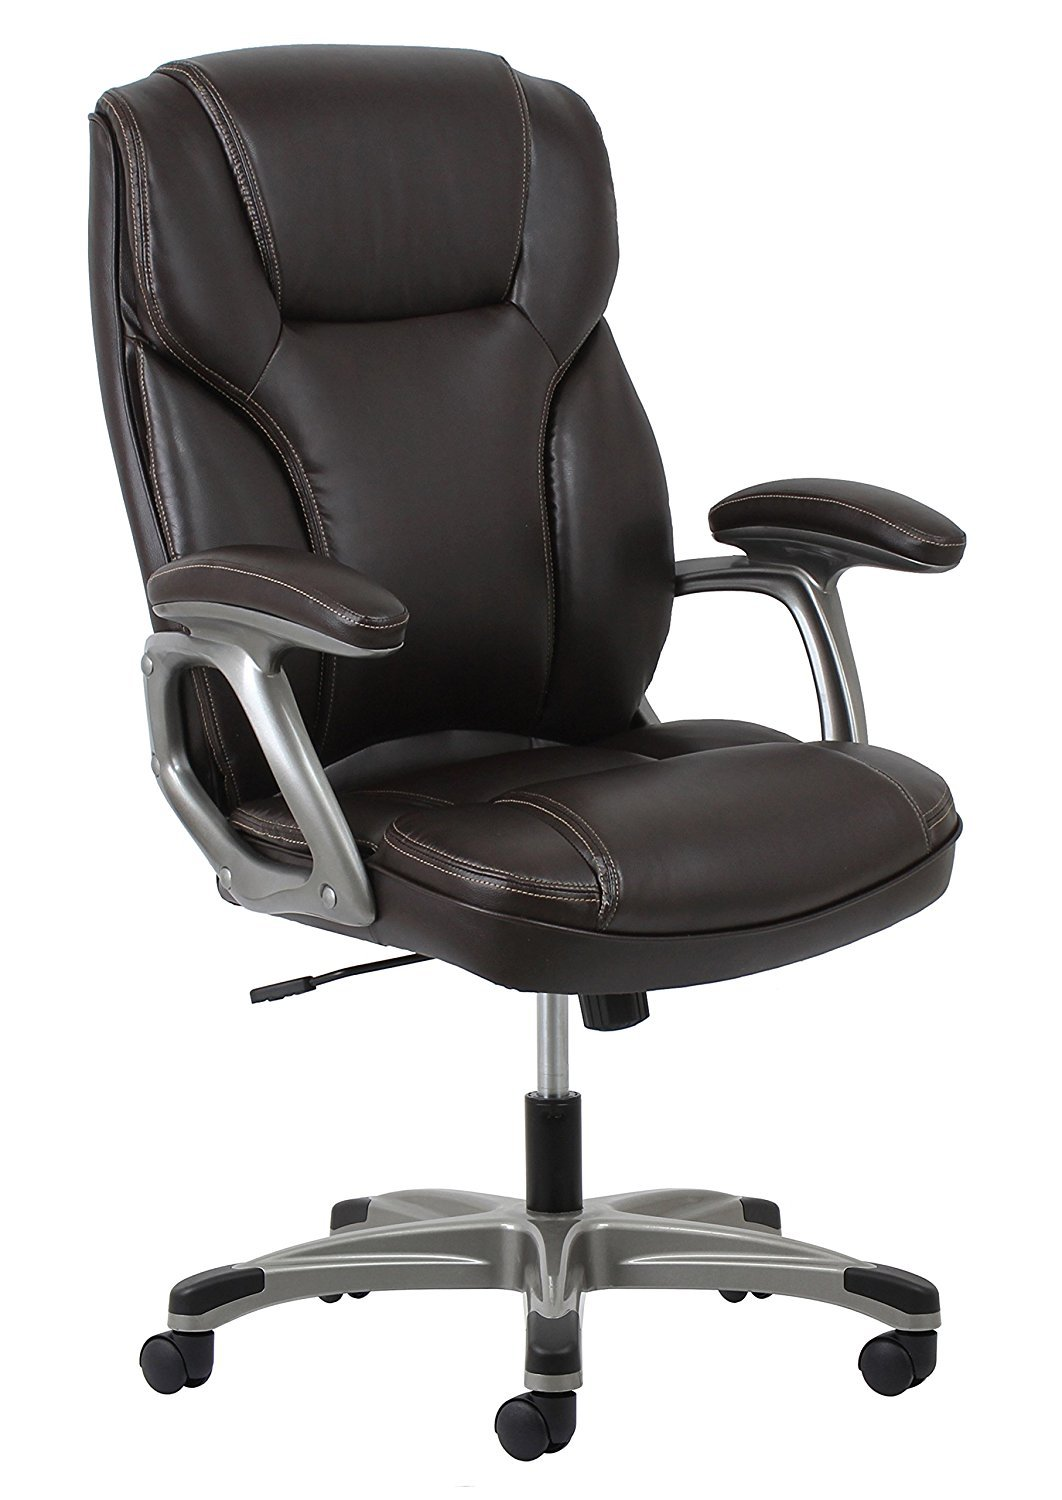 High Back Desk Chair Remix High Back Desk Chair By Knoll